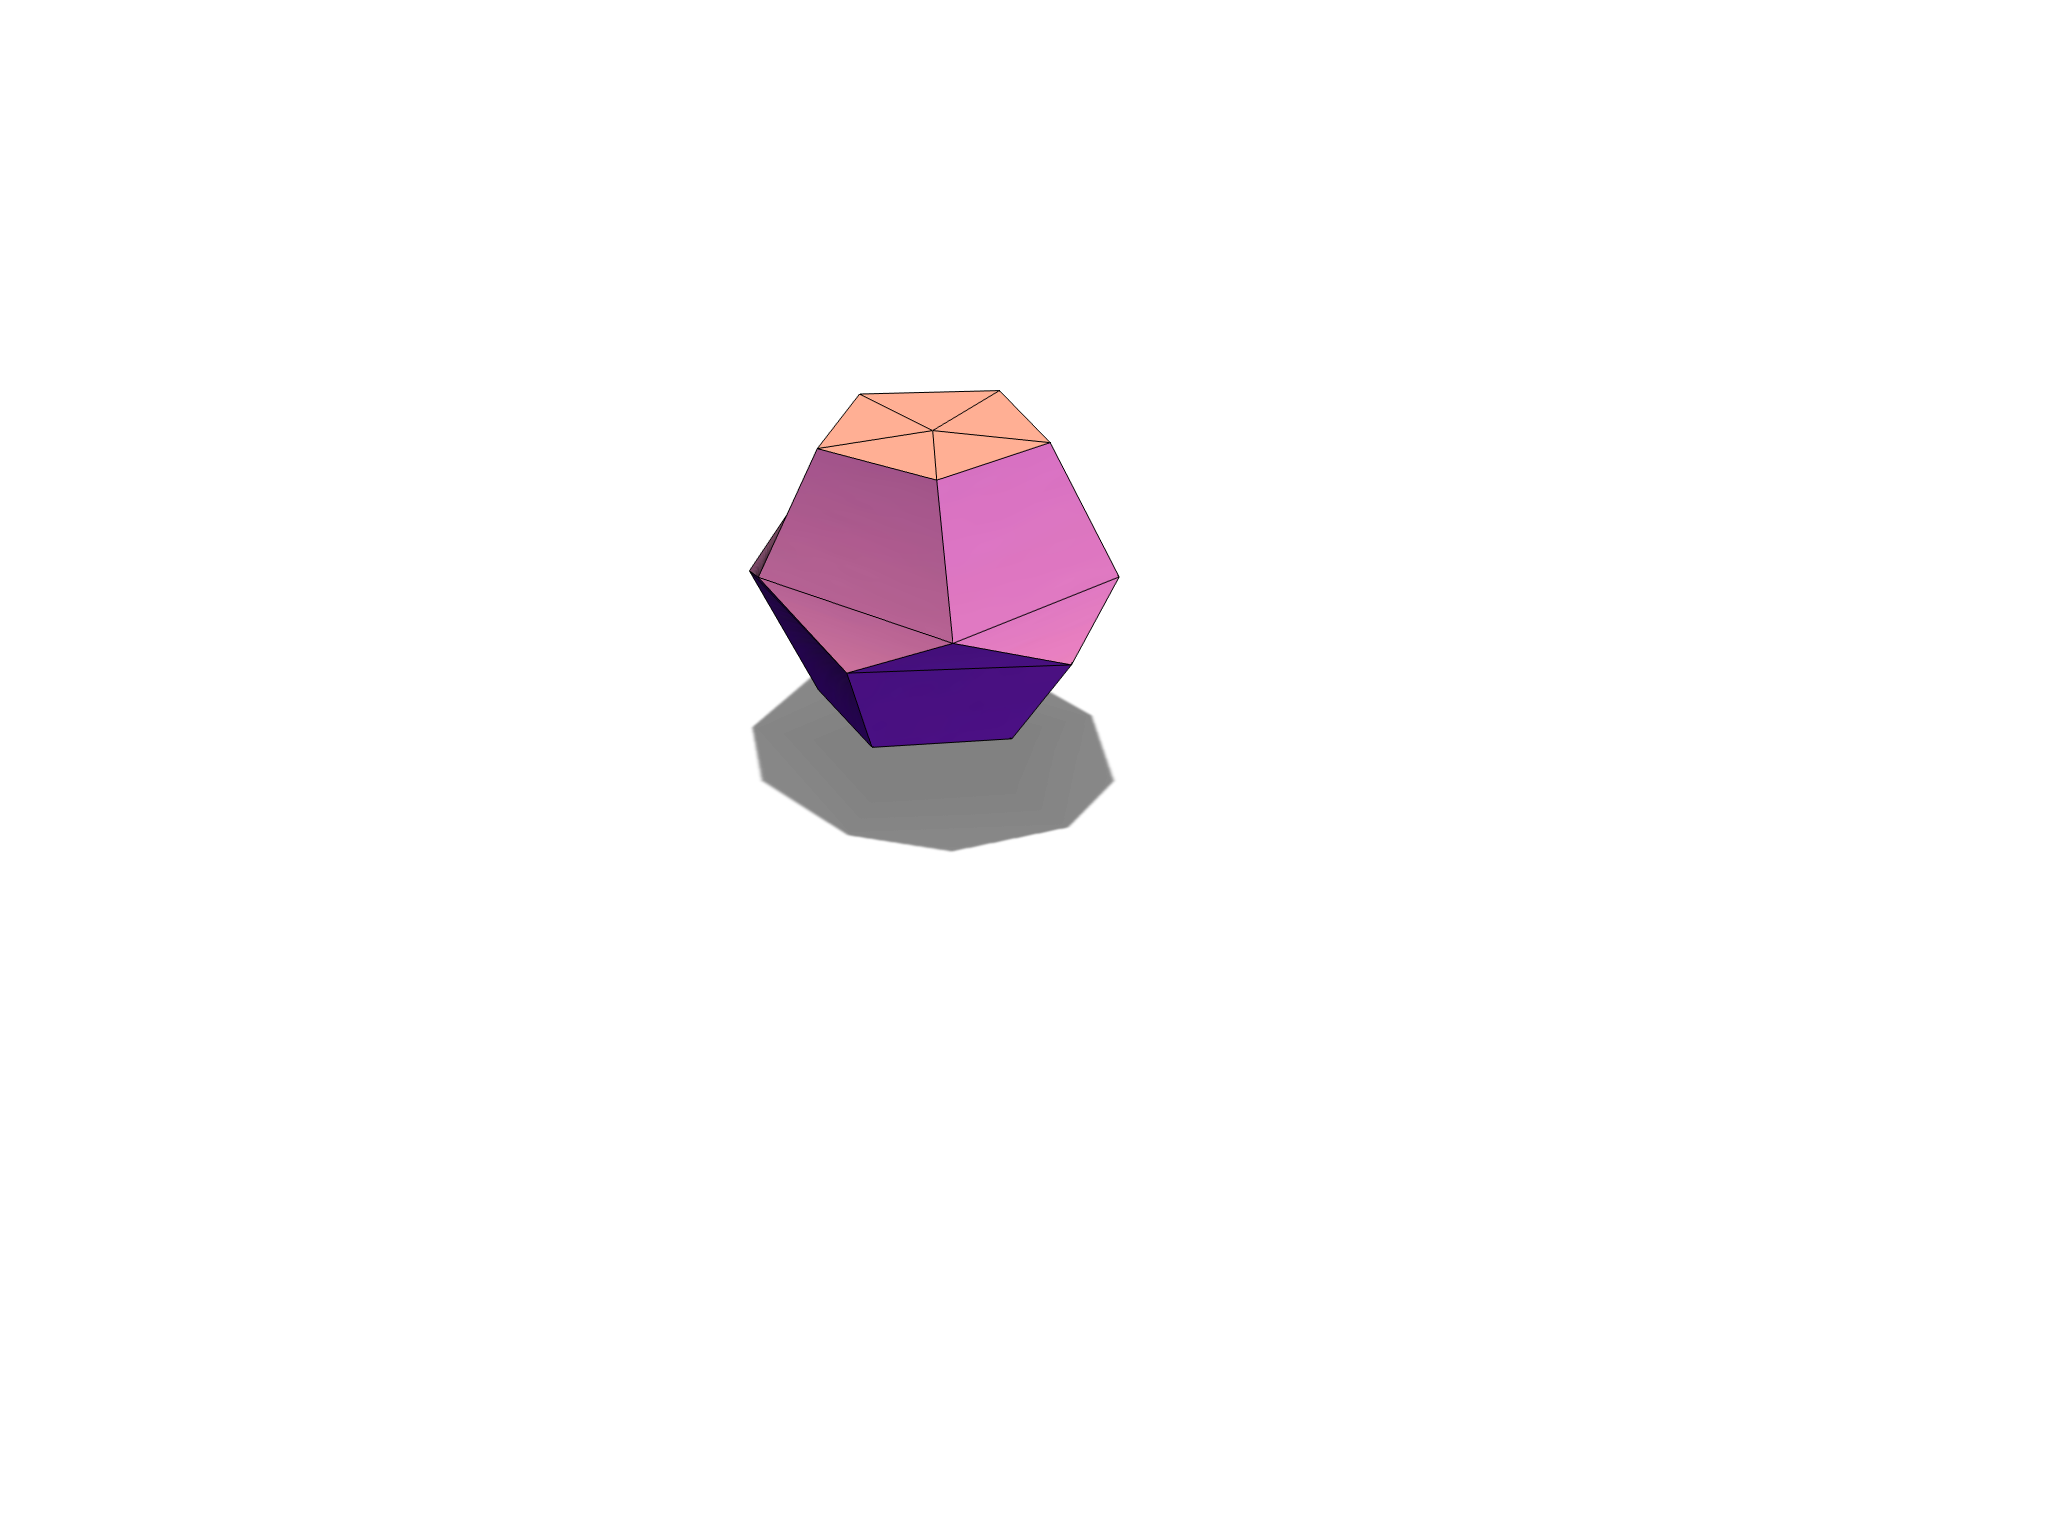 dodecahedron - 3D design by lolcuber May 11, 2018